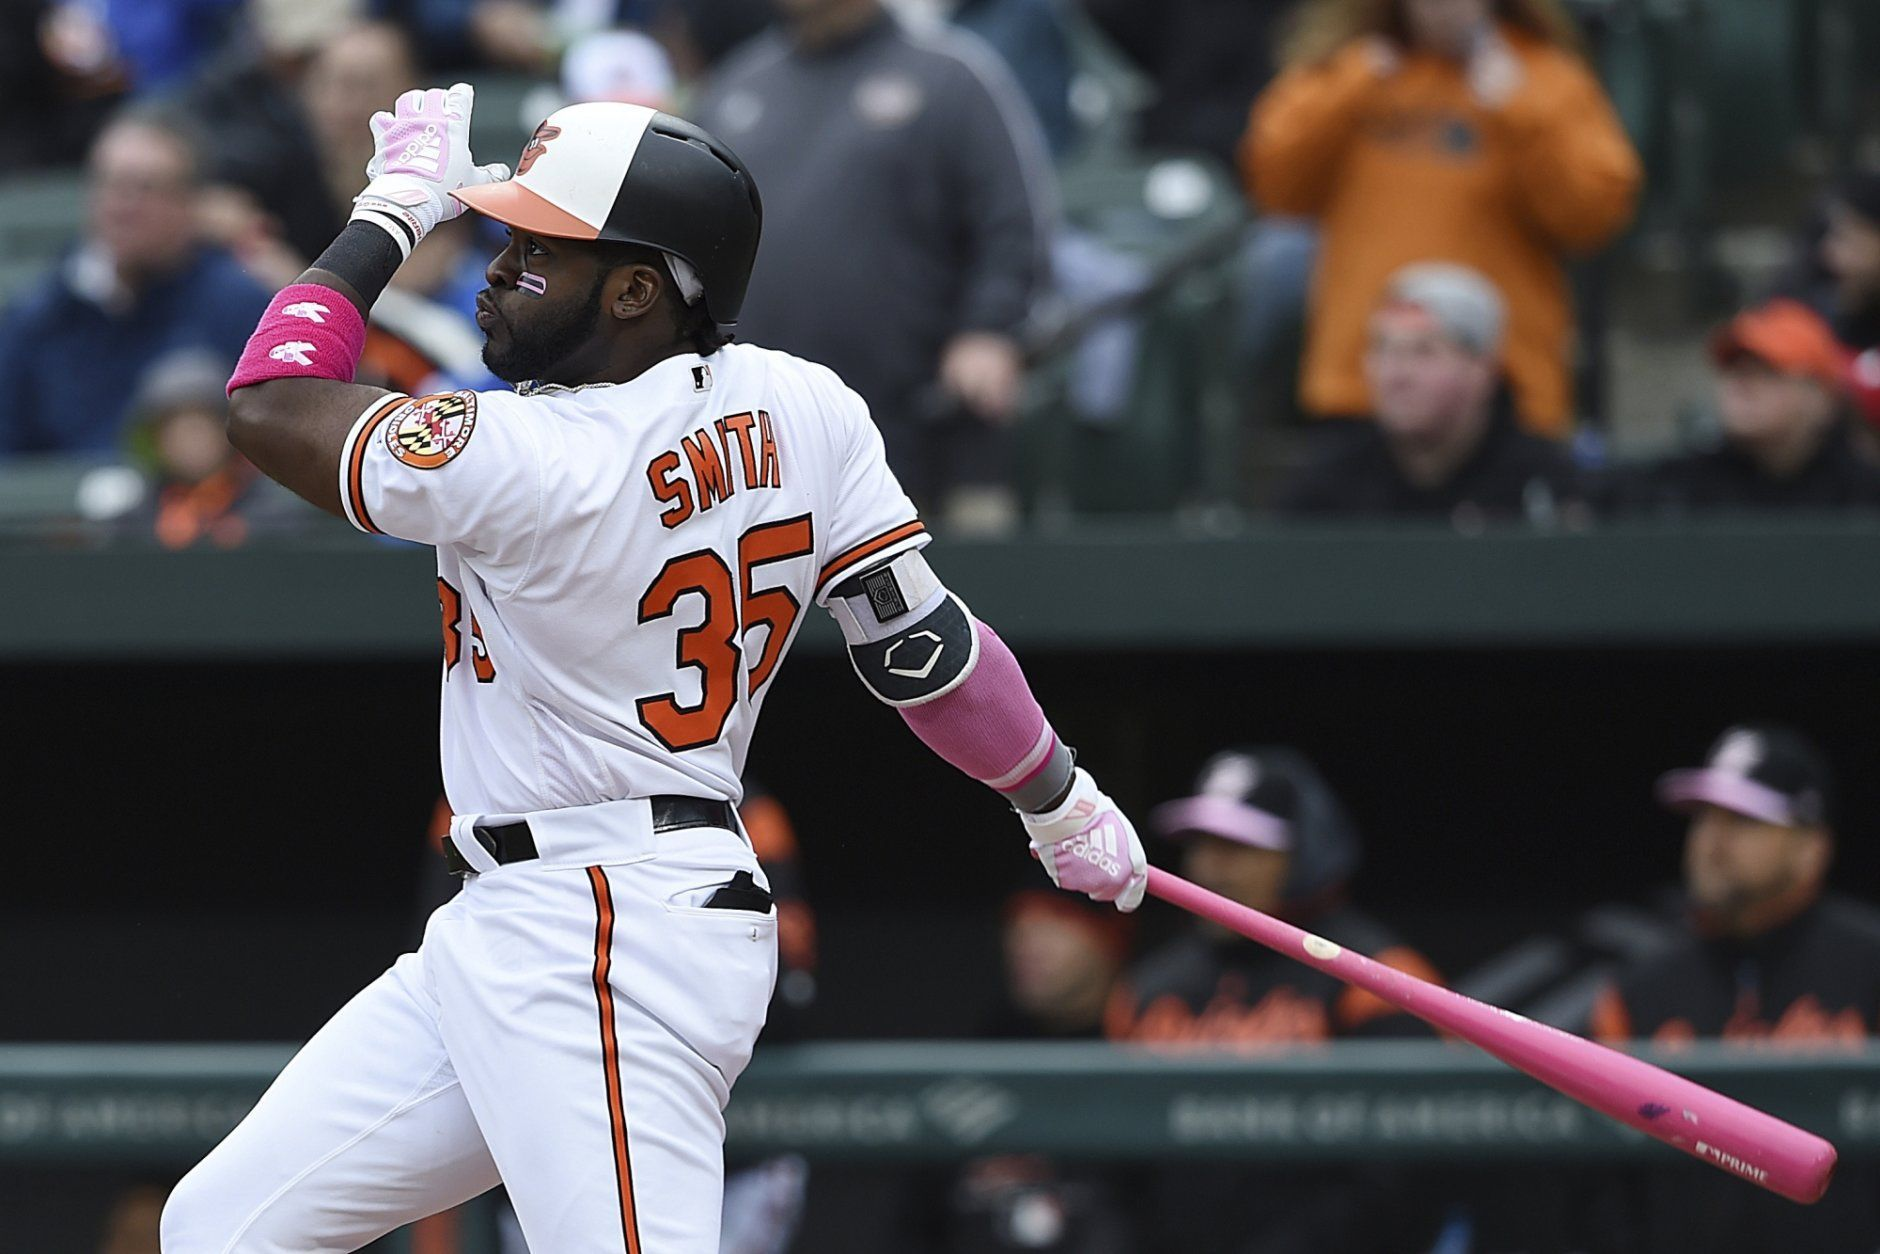 Baltimore Orioles' Dwight Smith Jr. follows through on a two-run home run against the Los Angeles Angels in the third inning of a baseball game, Sunday, May 12, 2019, in Baltimore. (AP Photo/Gail Burton)